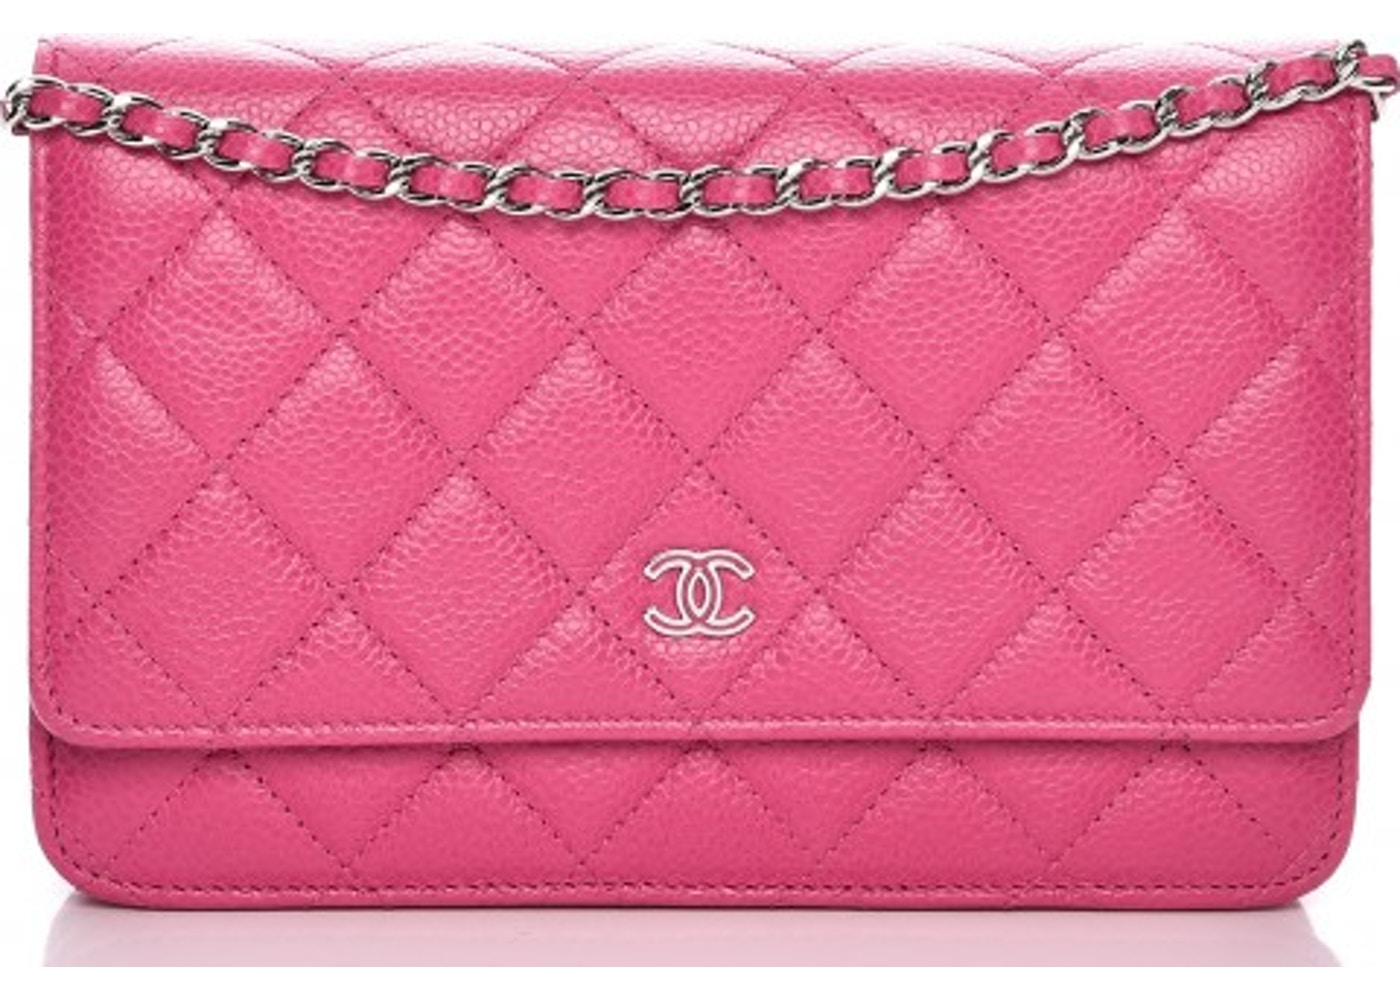 2ede1e84929c Chanel Wallet On Chain Diamond Quilted Bubblegum Pink. Diamond Quilted  Bubblegum Pink